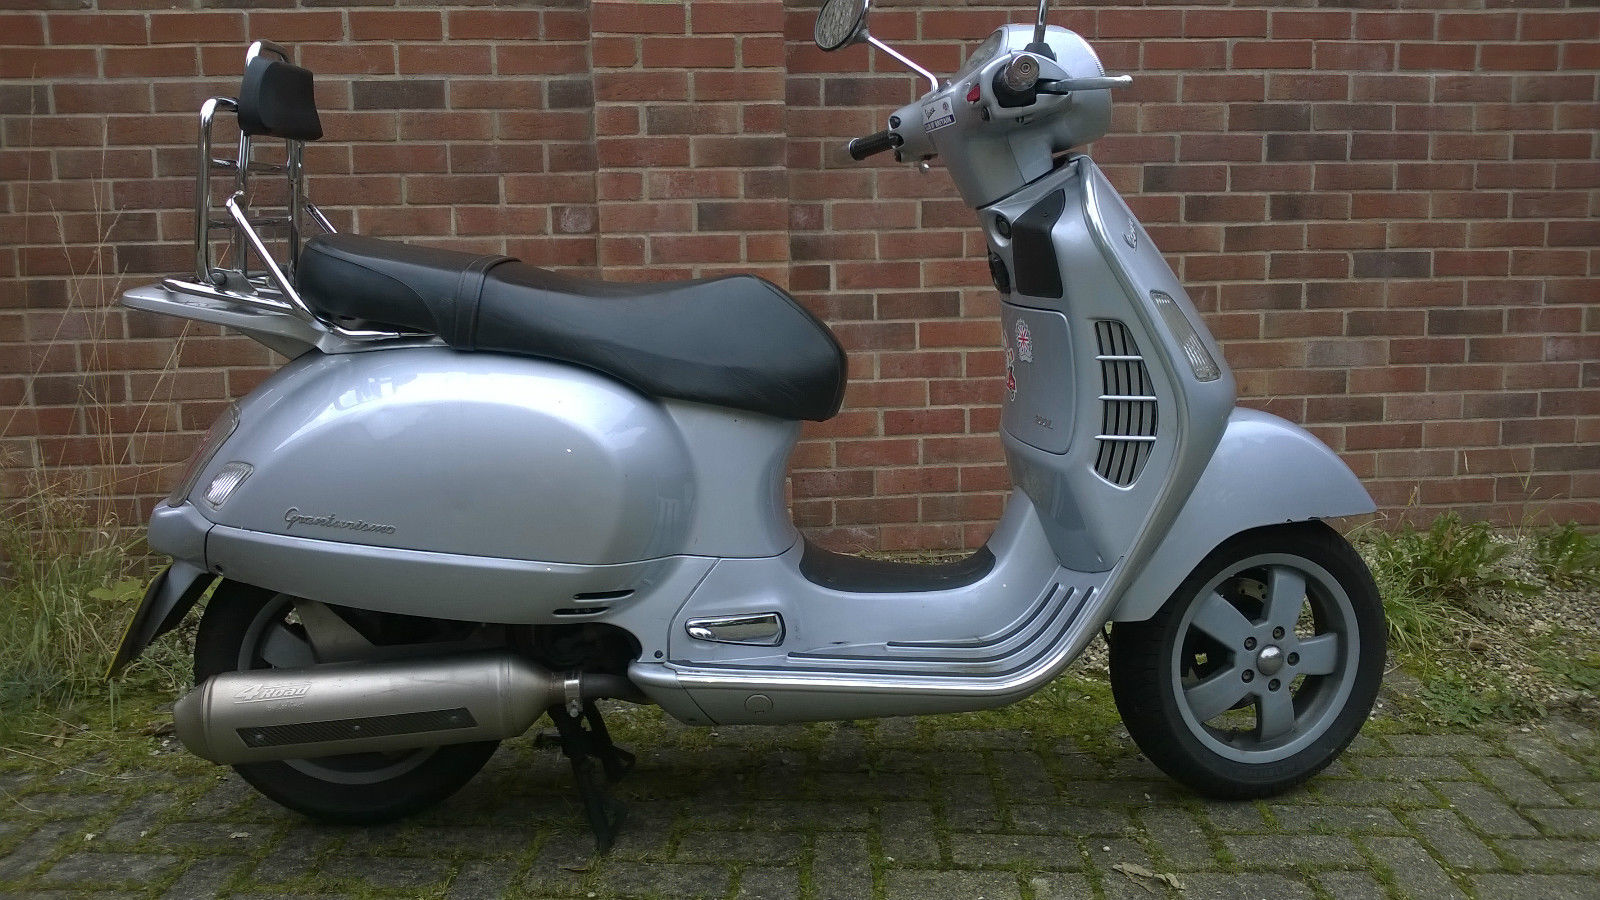 piaggio vespa gt200 granturismo scooter has tax mot but needs work. Black Bedroom Furniture Sets. Home Design Ideas